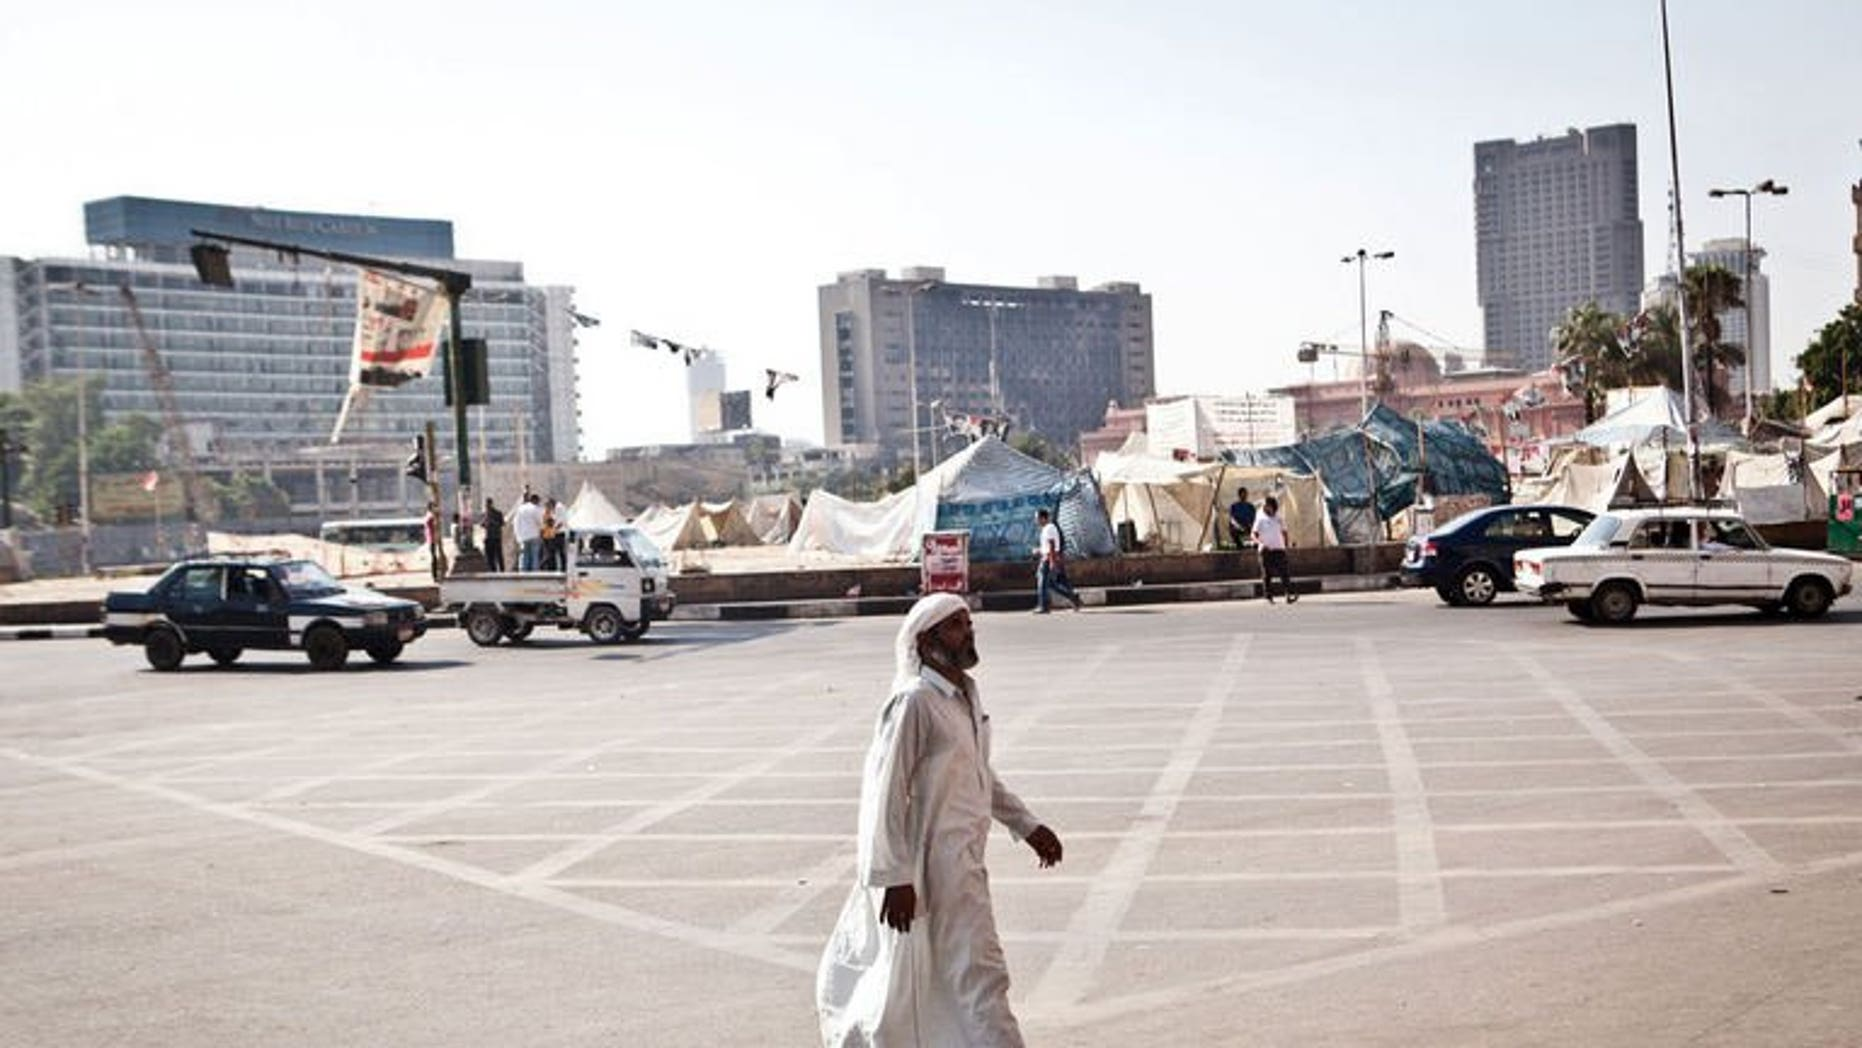 An Egyptian man walks in Tahrir Square, after it has been partially reopened to traffic, on August 20, 2013 in Cairo. European Union foreign policy chief Catherine Ashton said Tuesday that she had offered to return to Cairo to help facilitate a way out of the country's crisis.